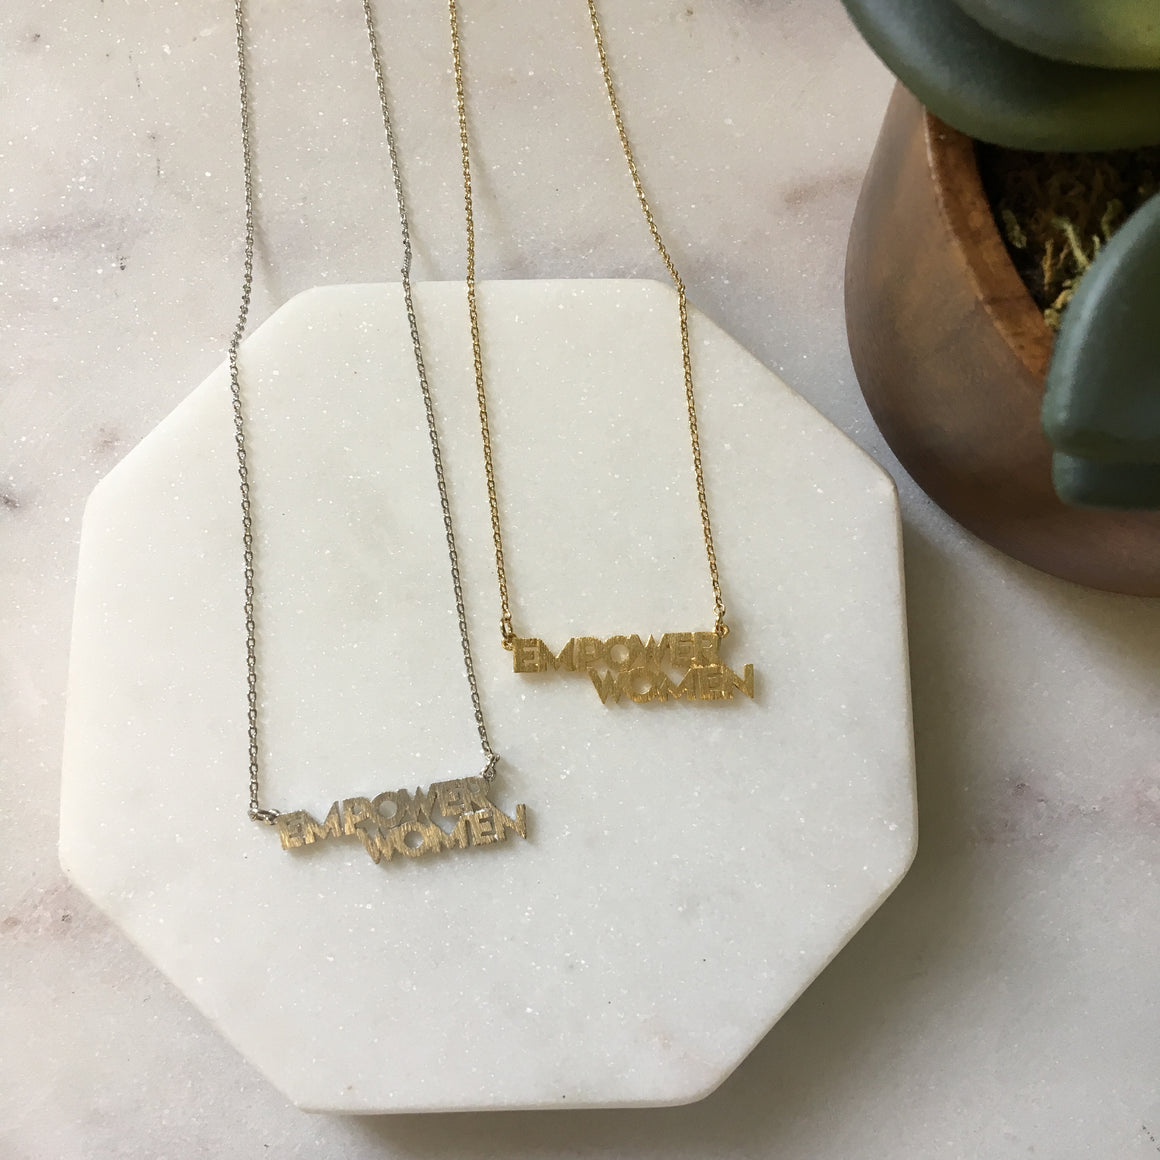 Empower Women Necklace - pretty-simple-2